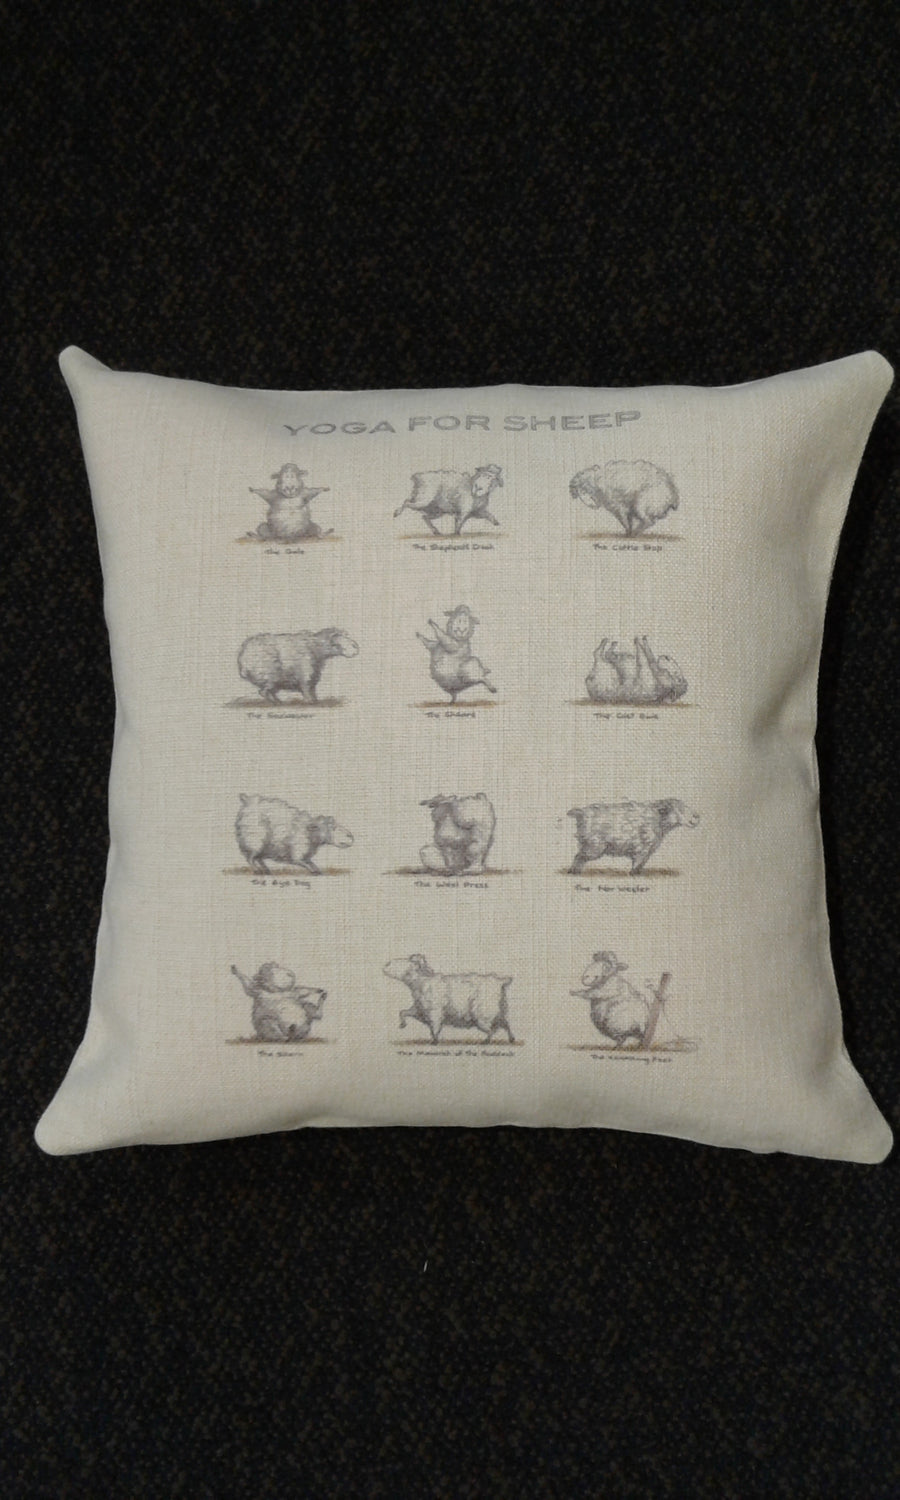 Cushions - Yoga for Sheep